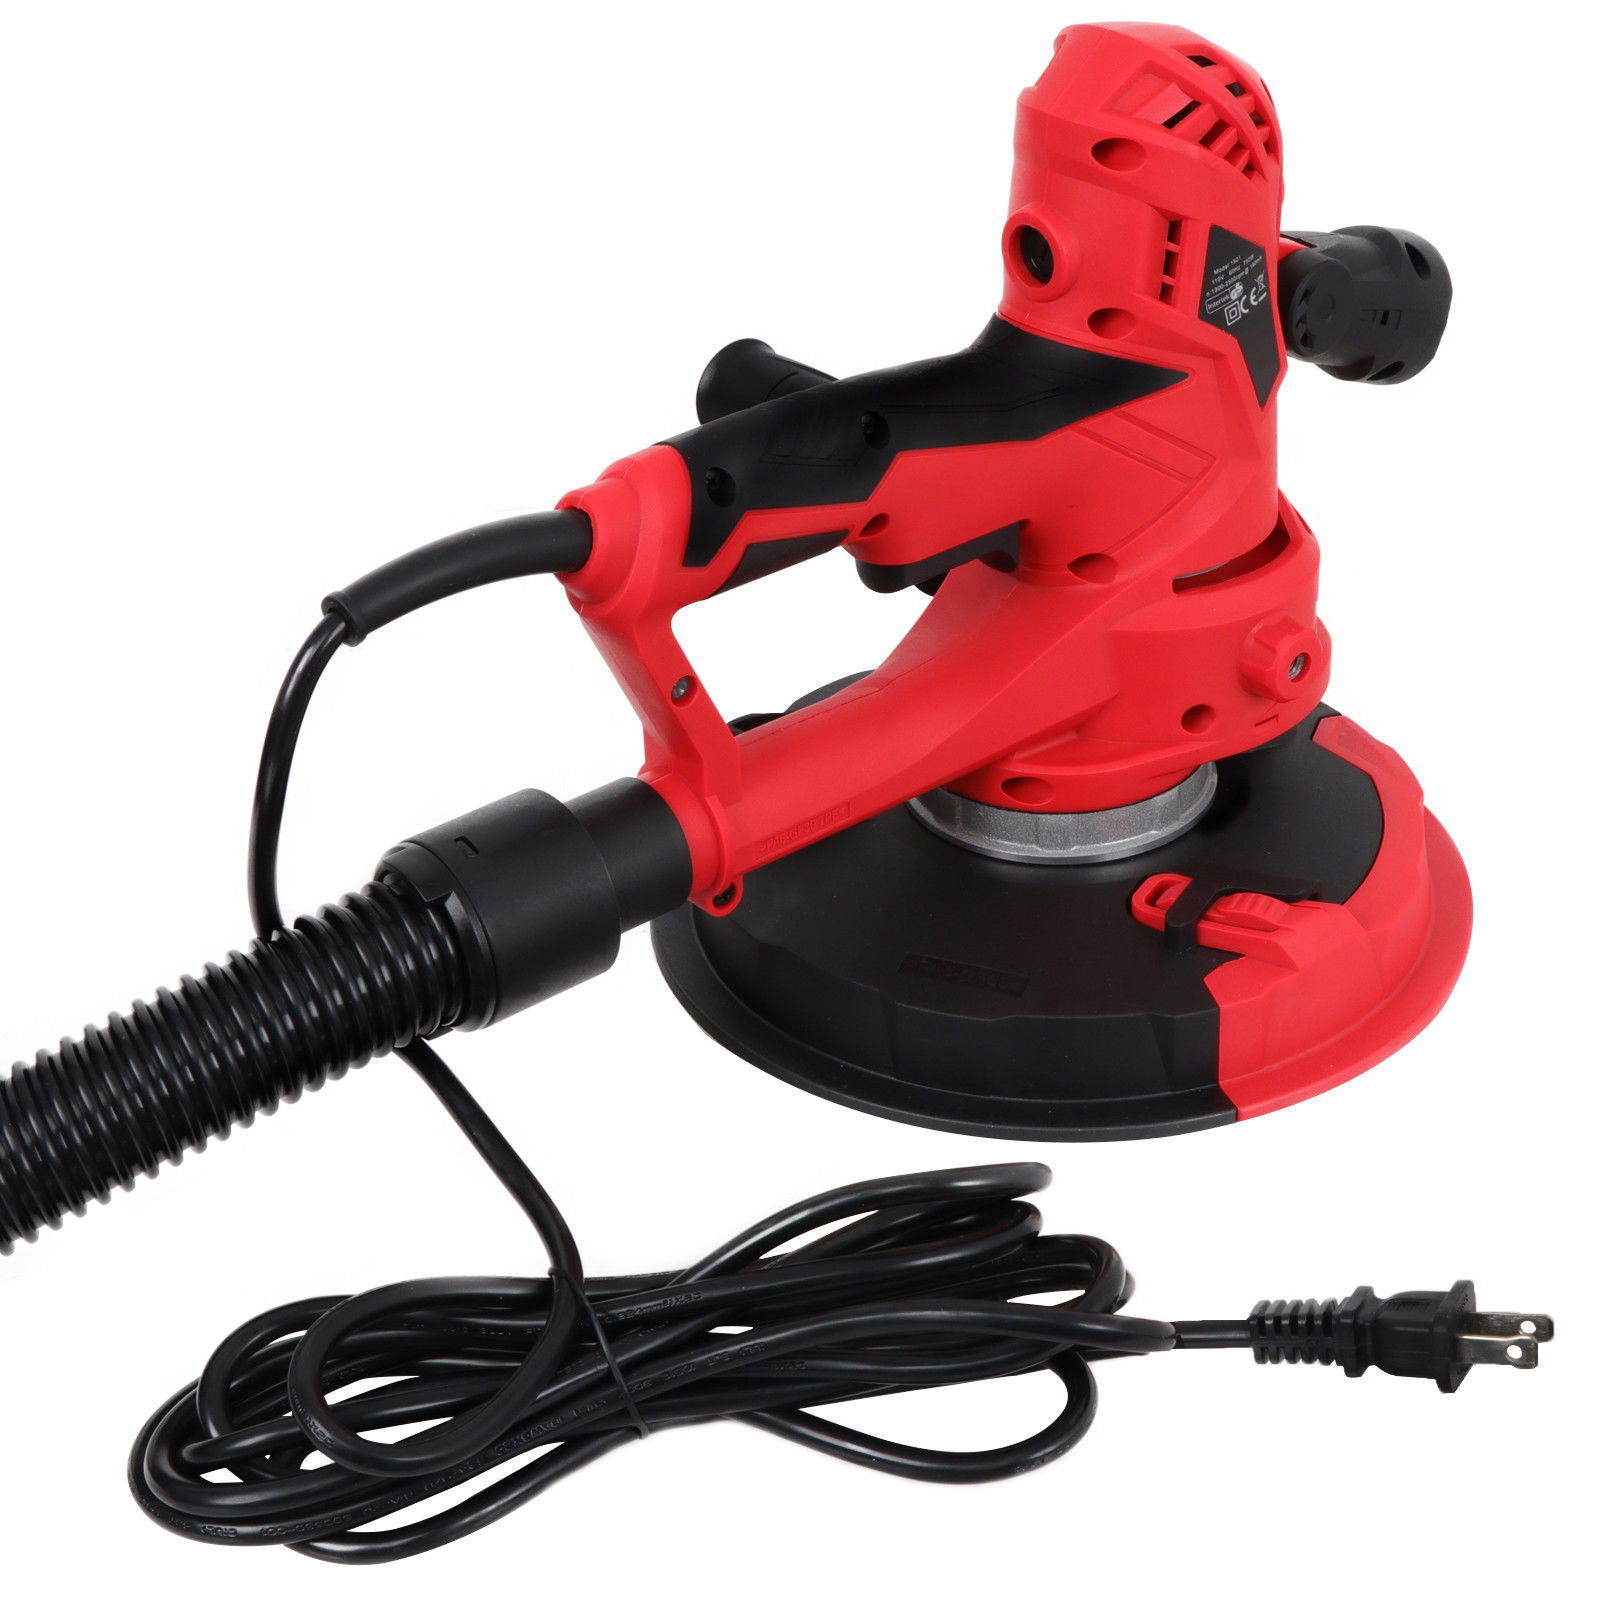 Zeny Electric HandHeld Drywall Sander 750W Variable Speed with Vacuum & LED Light New